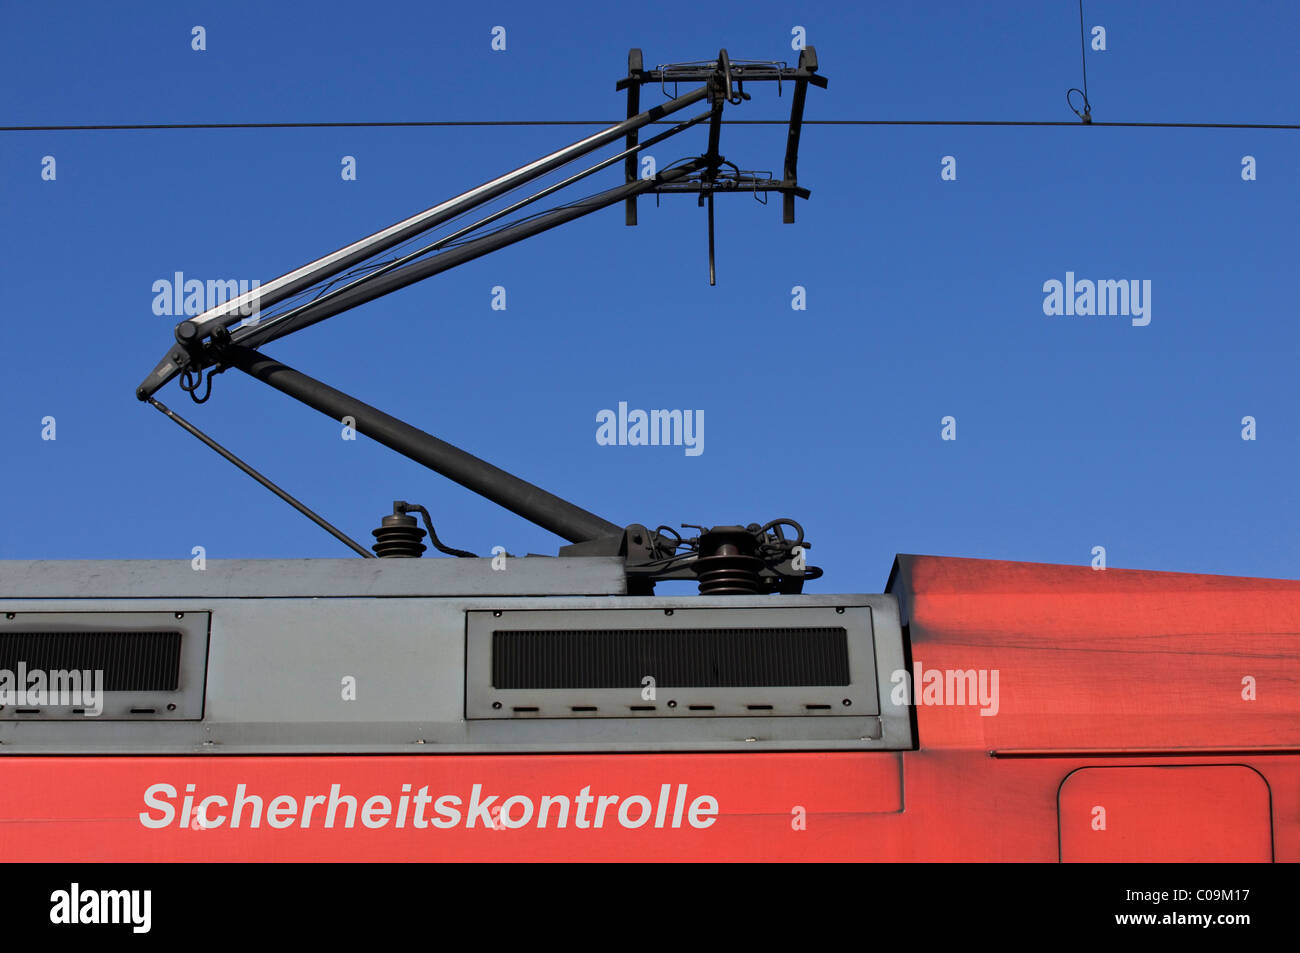 Train, power car with pantograph, writing 'Sicherheitskontrolle' security check, composing - Stock Image